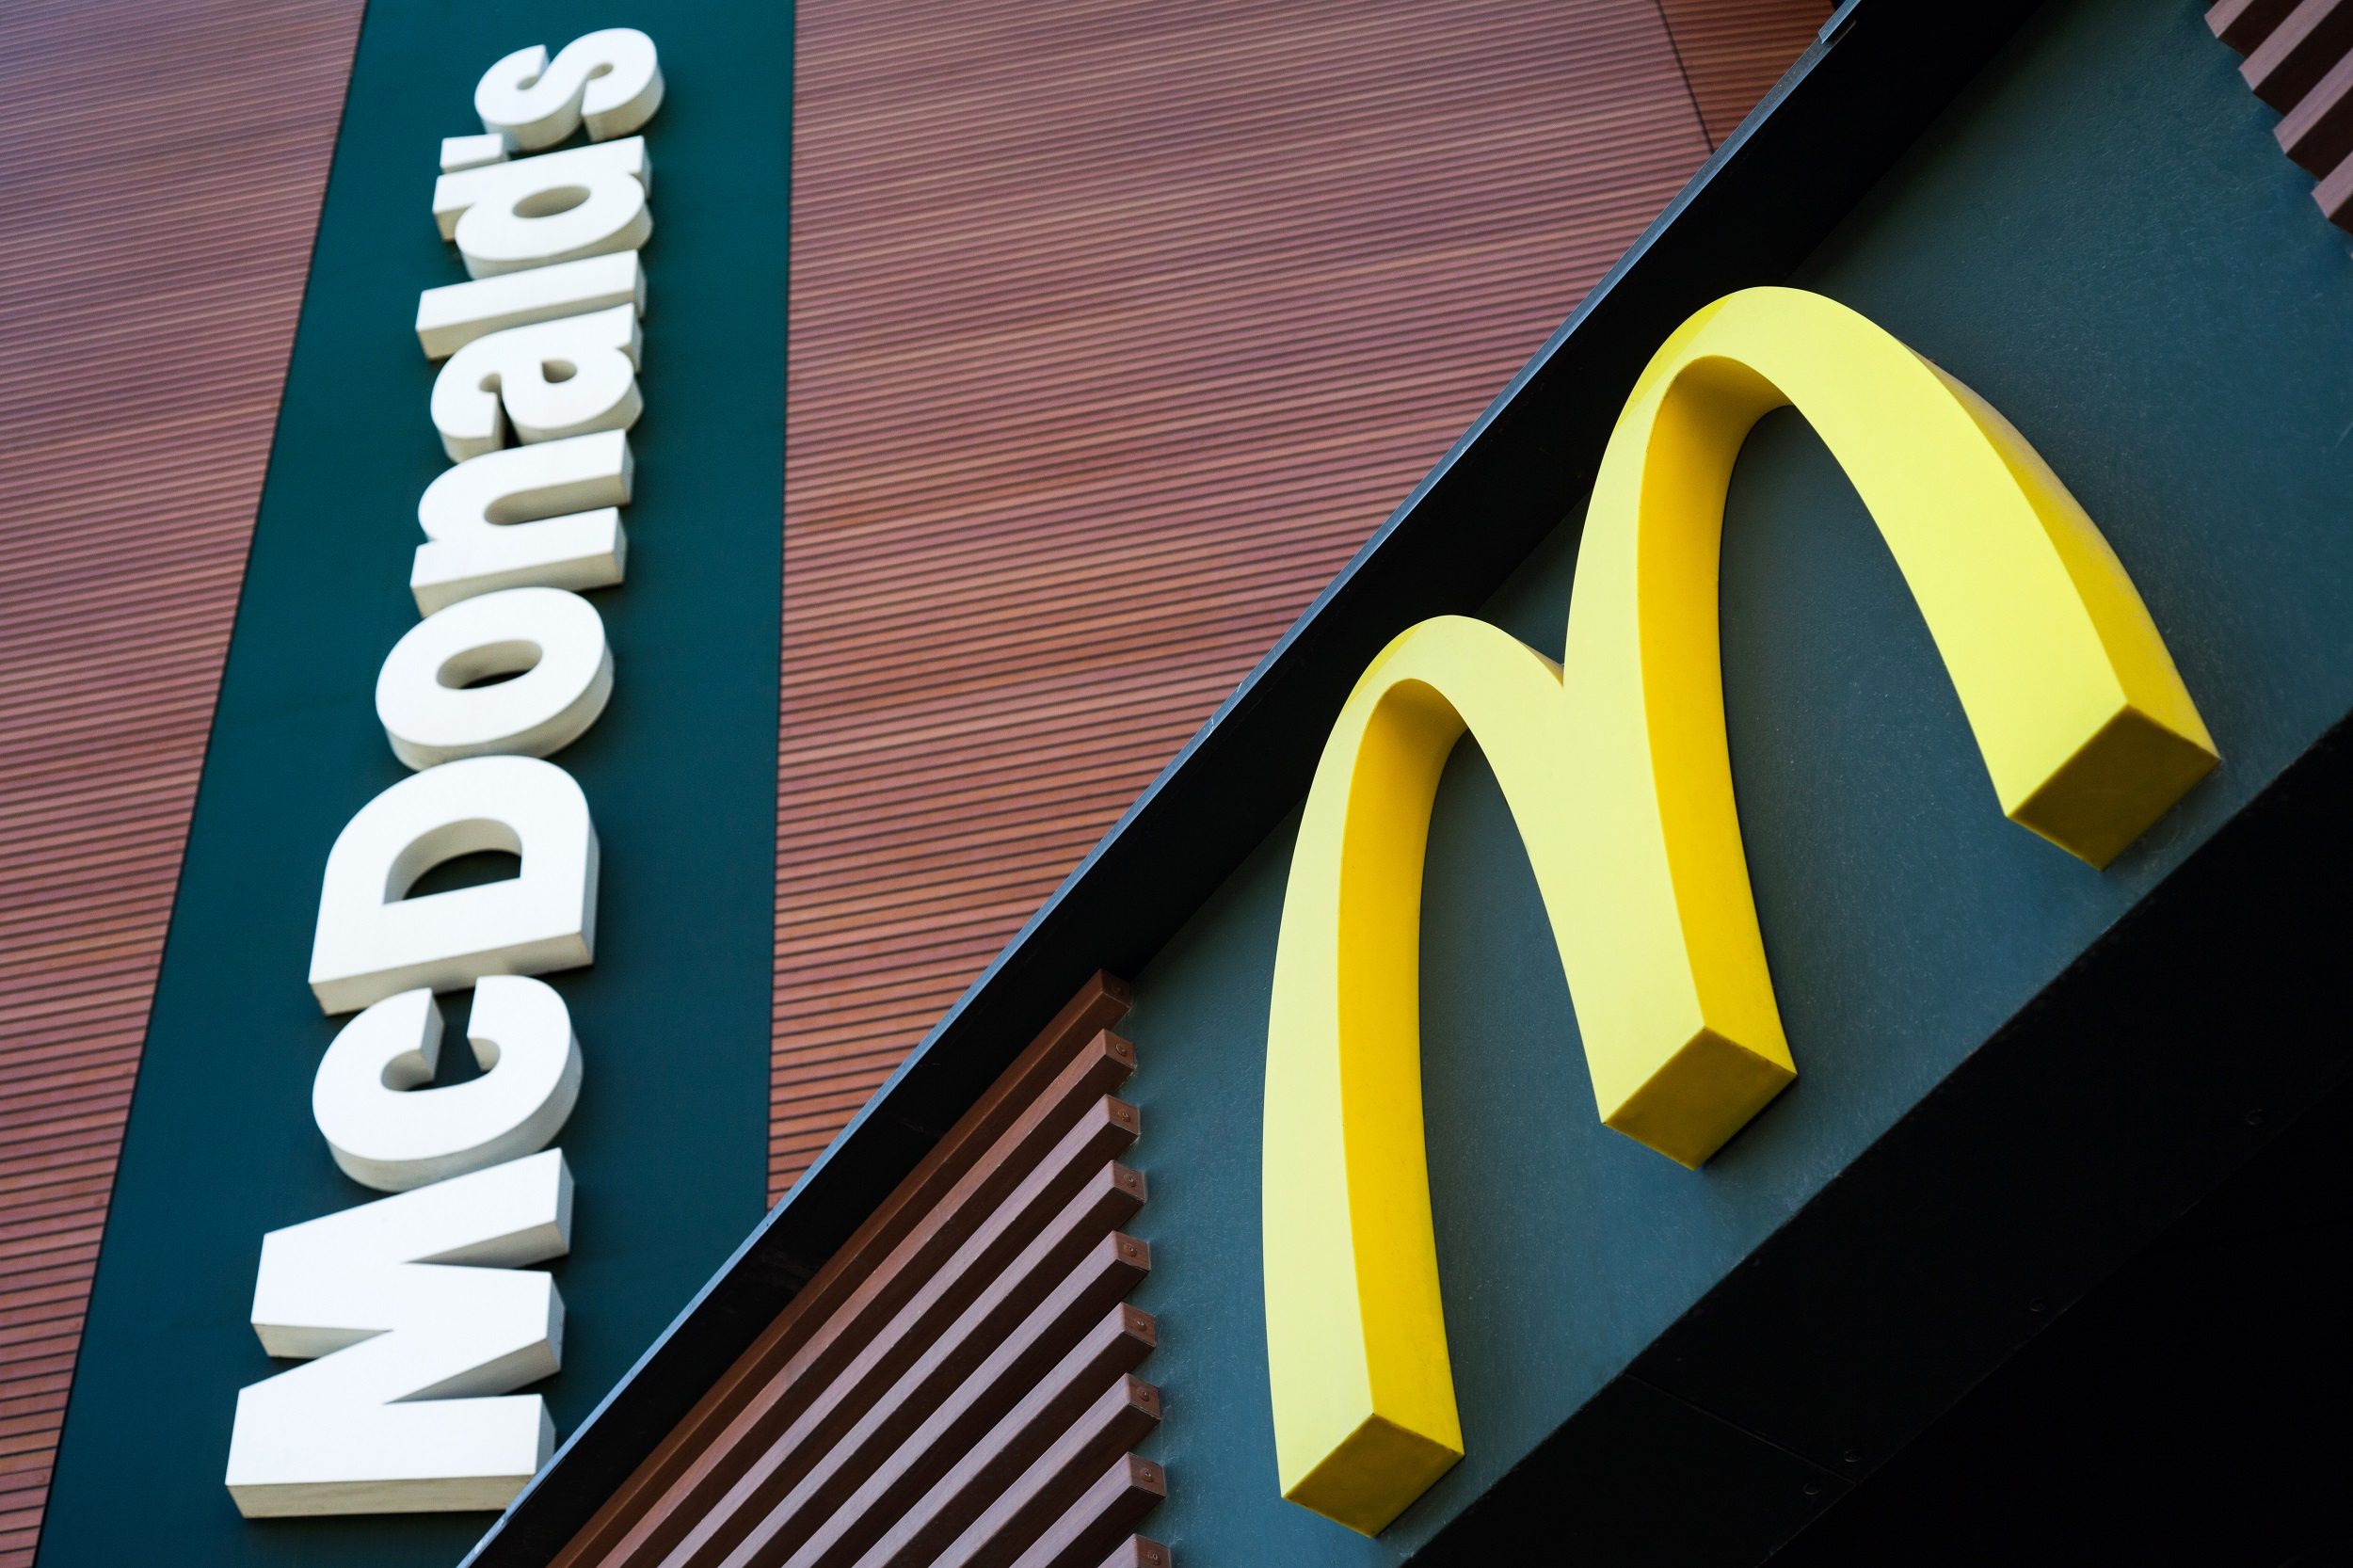 McDonald's Storefront Sign and Logo